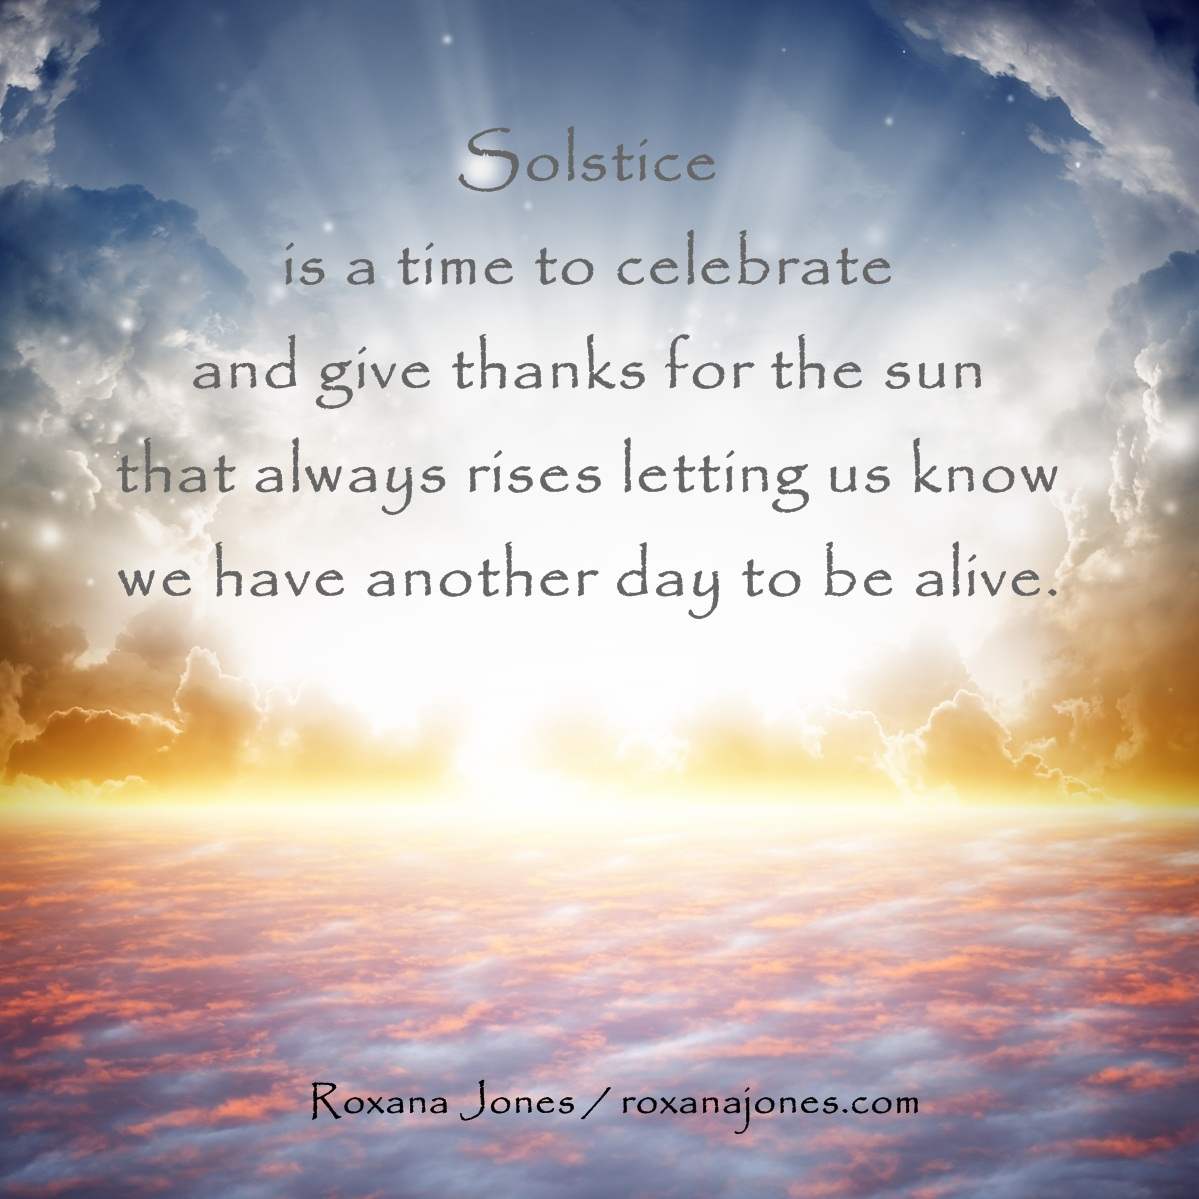 Inspirational Quotes About Positive: Inspirational Quotes About The Sun. QuotesGram